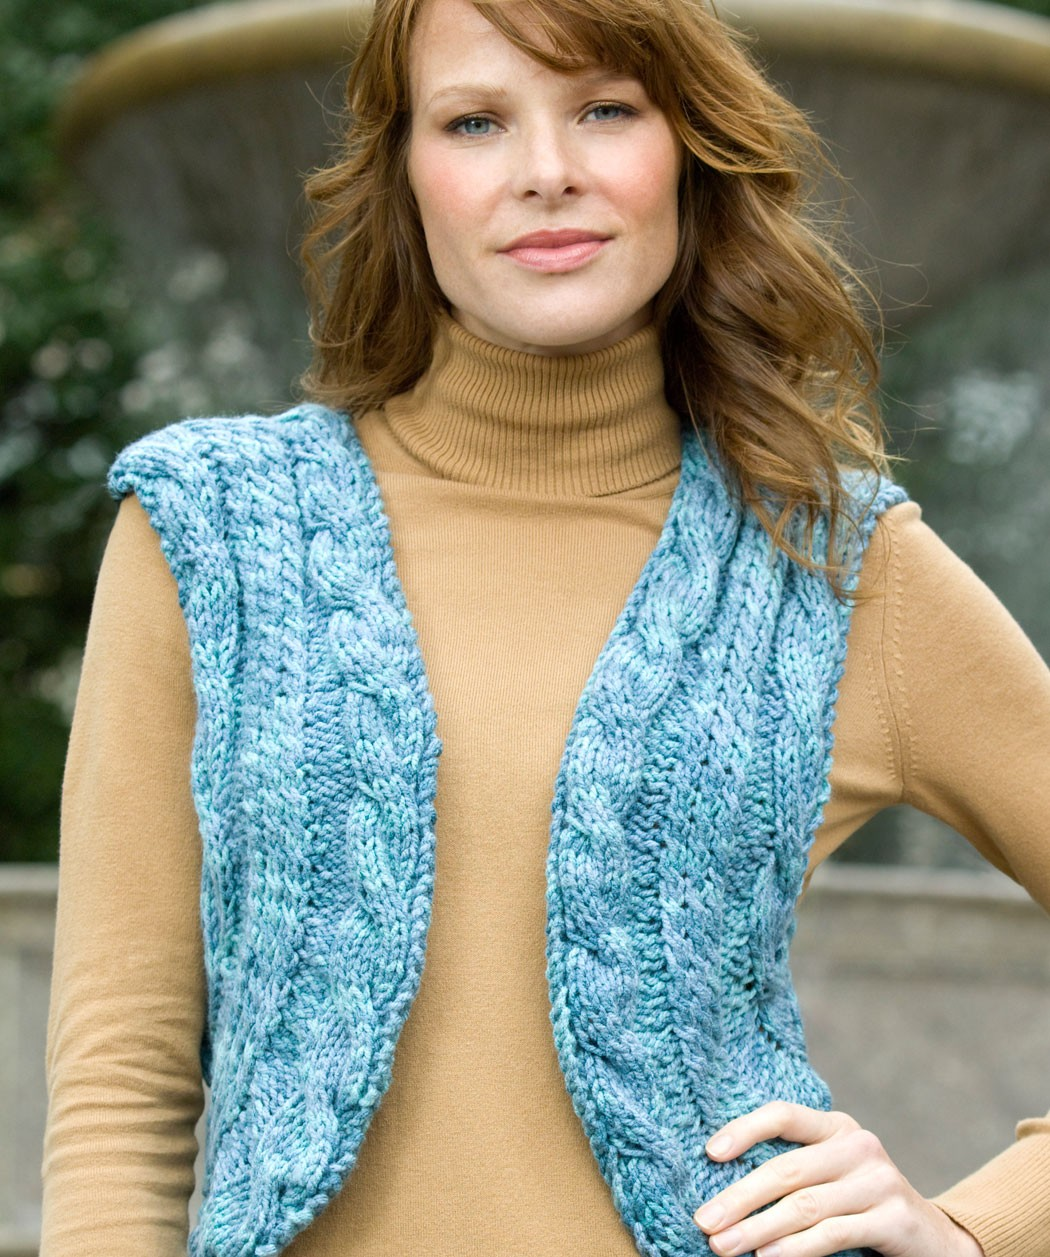 Knitting Pattern Cardigan Vest : Cable Knit Sweater Patterns A Knitting Blog